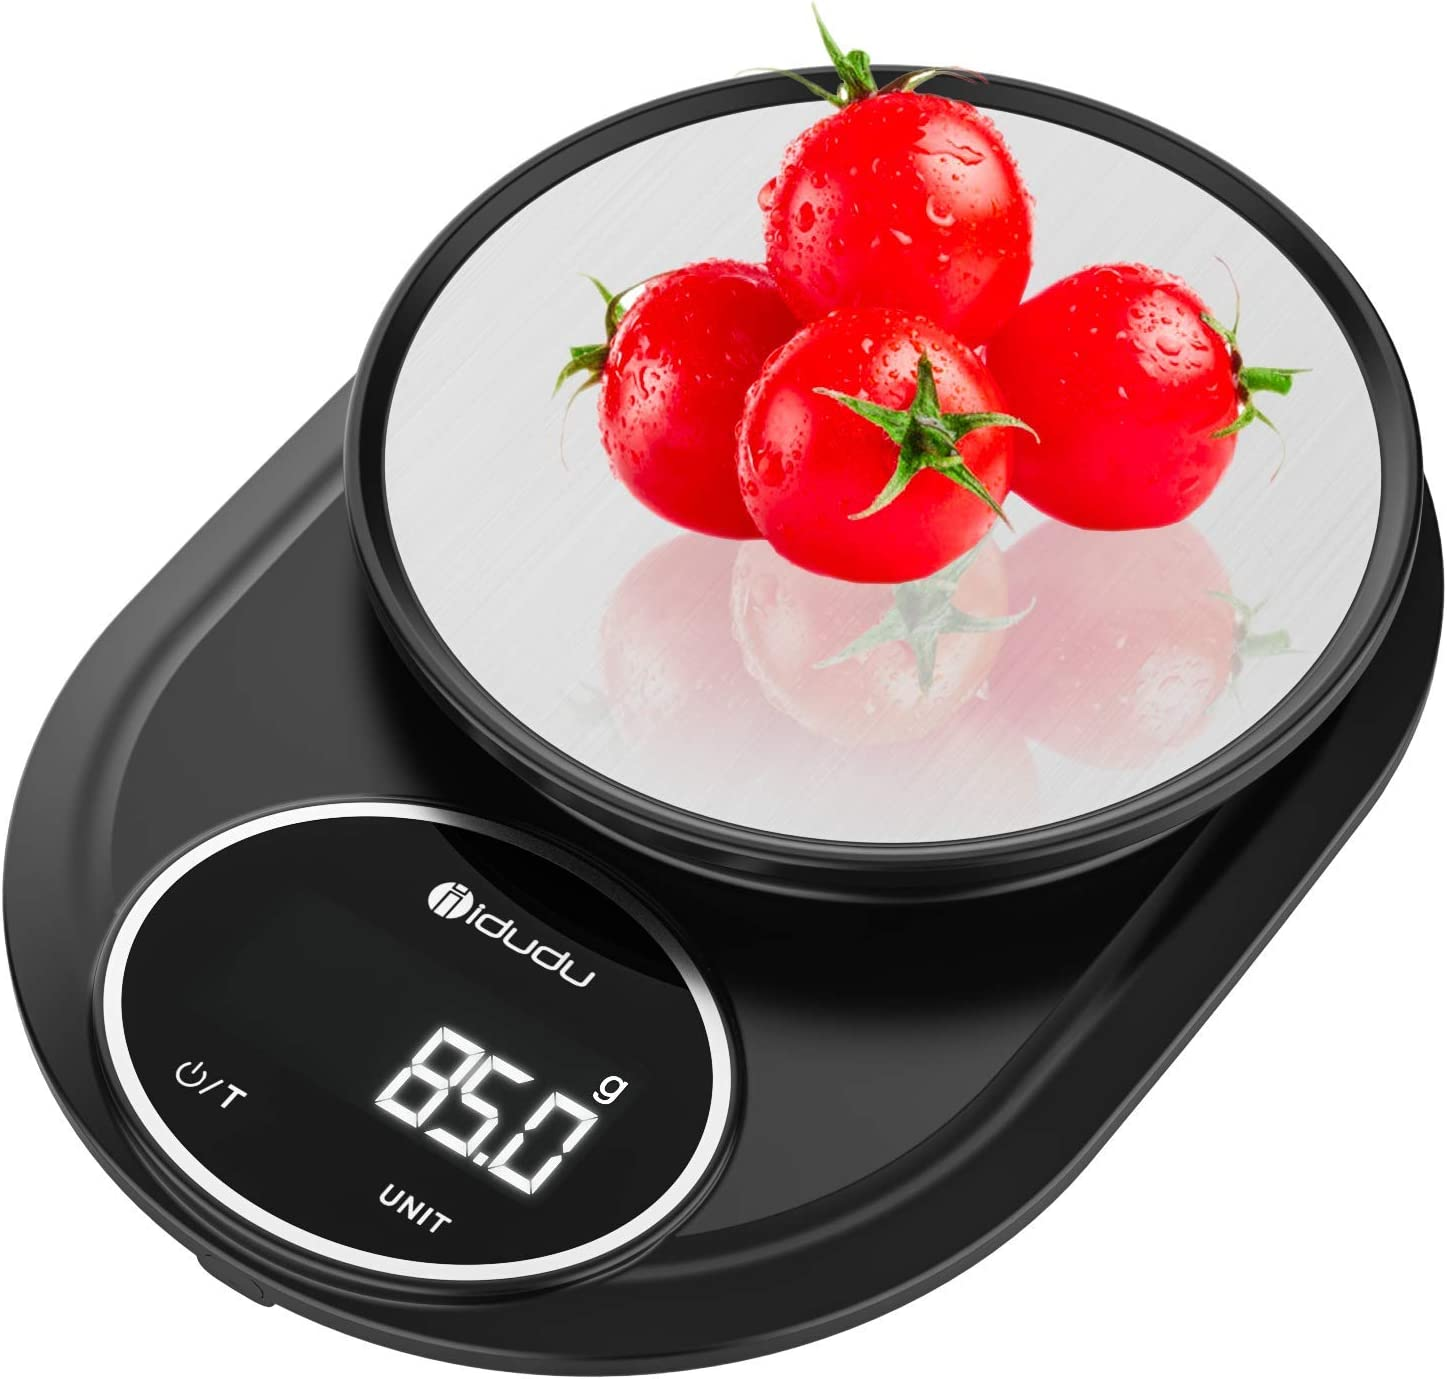 Food Scale, Digital Kitchen Scale Wight Grams and Oz-0.1g/0.001oz For Baking, Cooking and Coffee with LCD Display